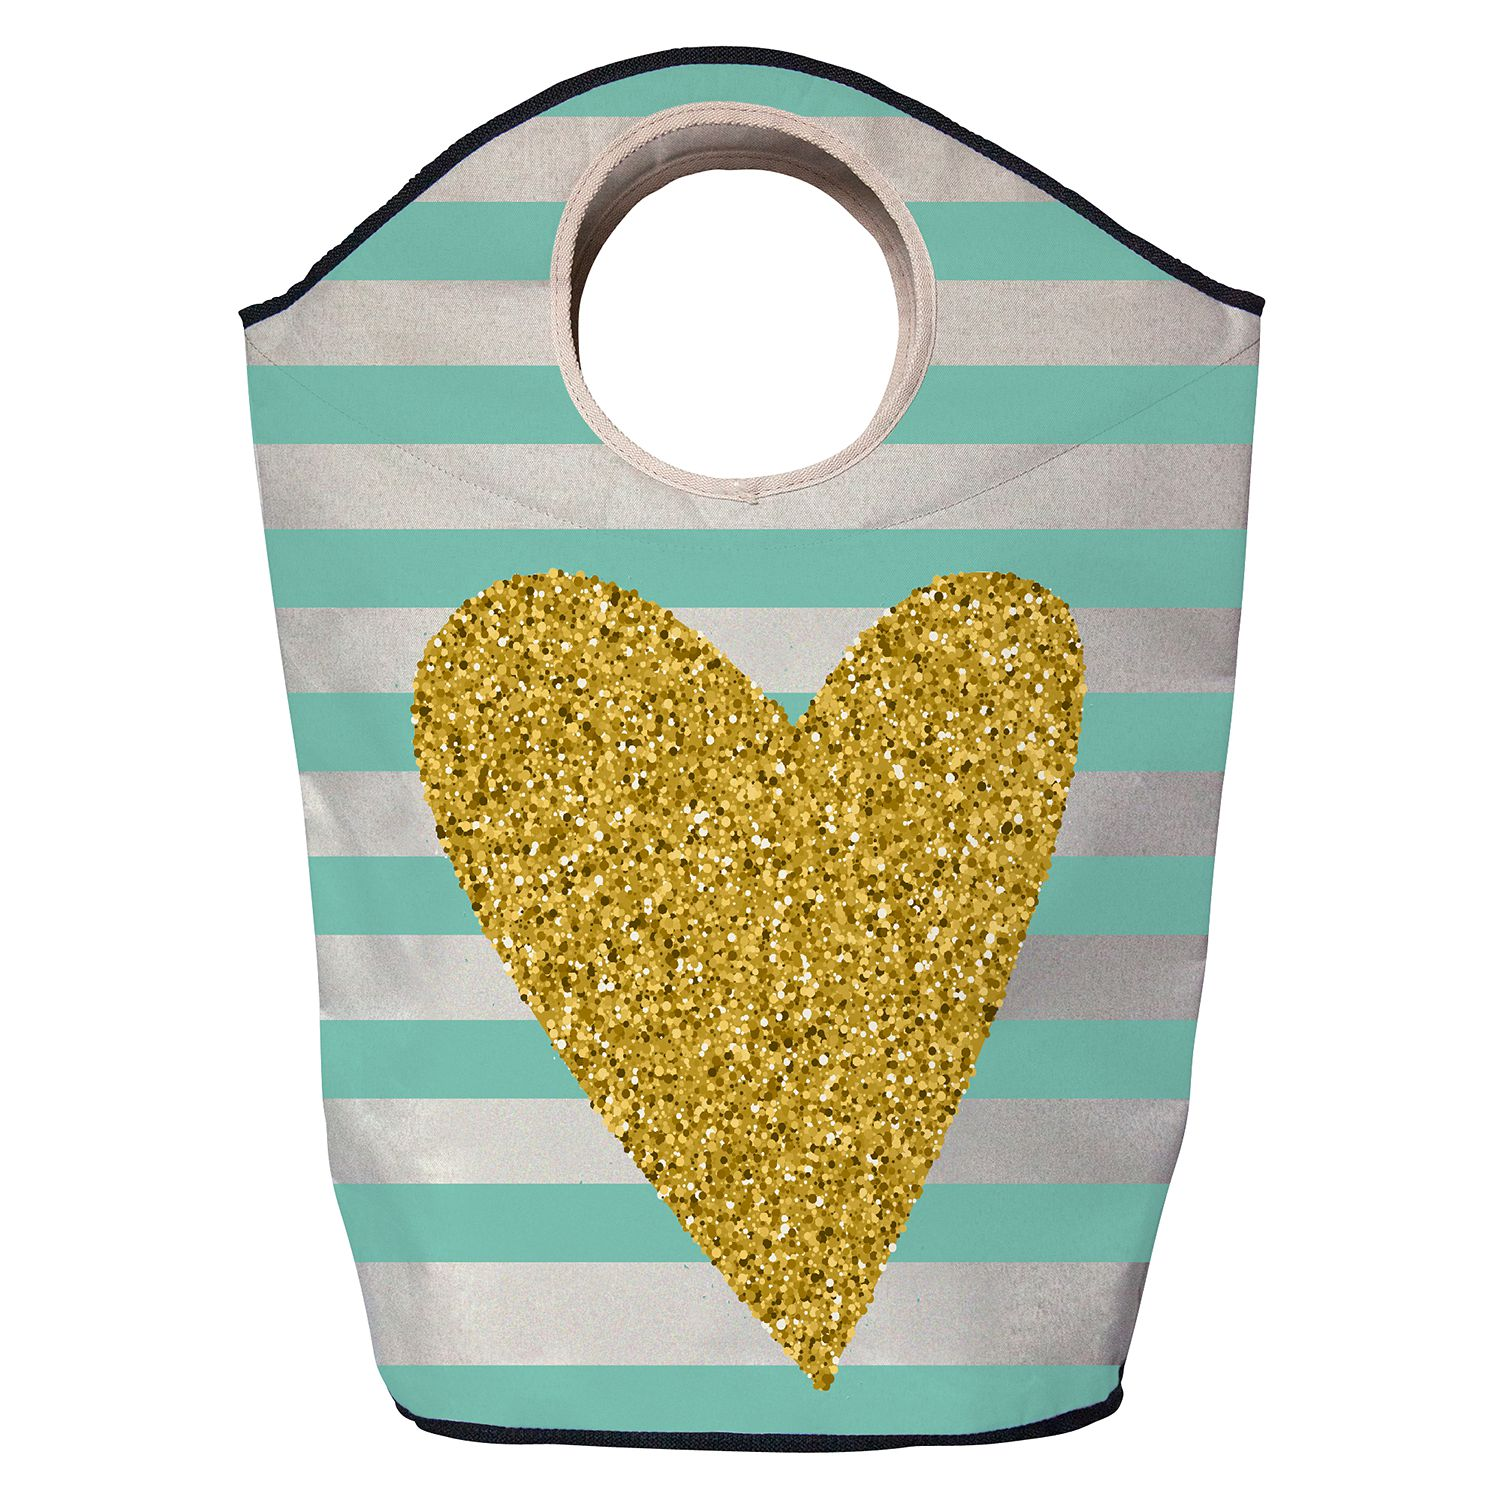 Wasmand gold heart - geweven stof - goudkleurig/turquoise, Butter Kings